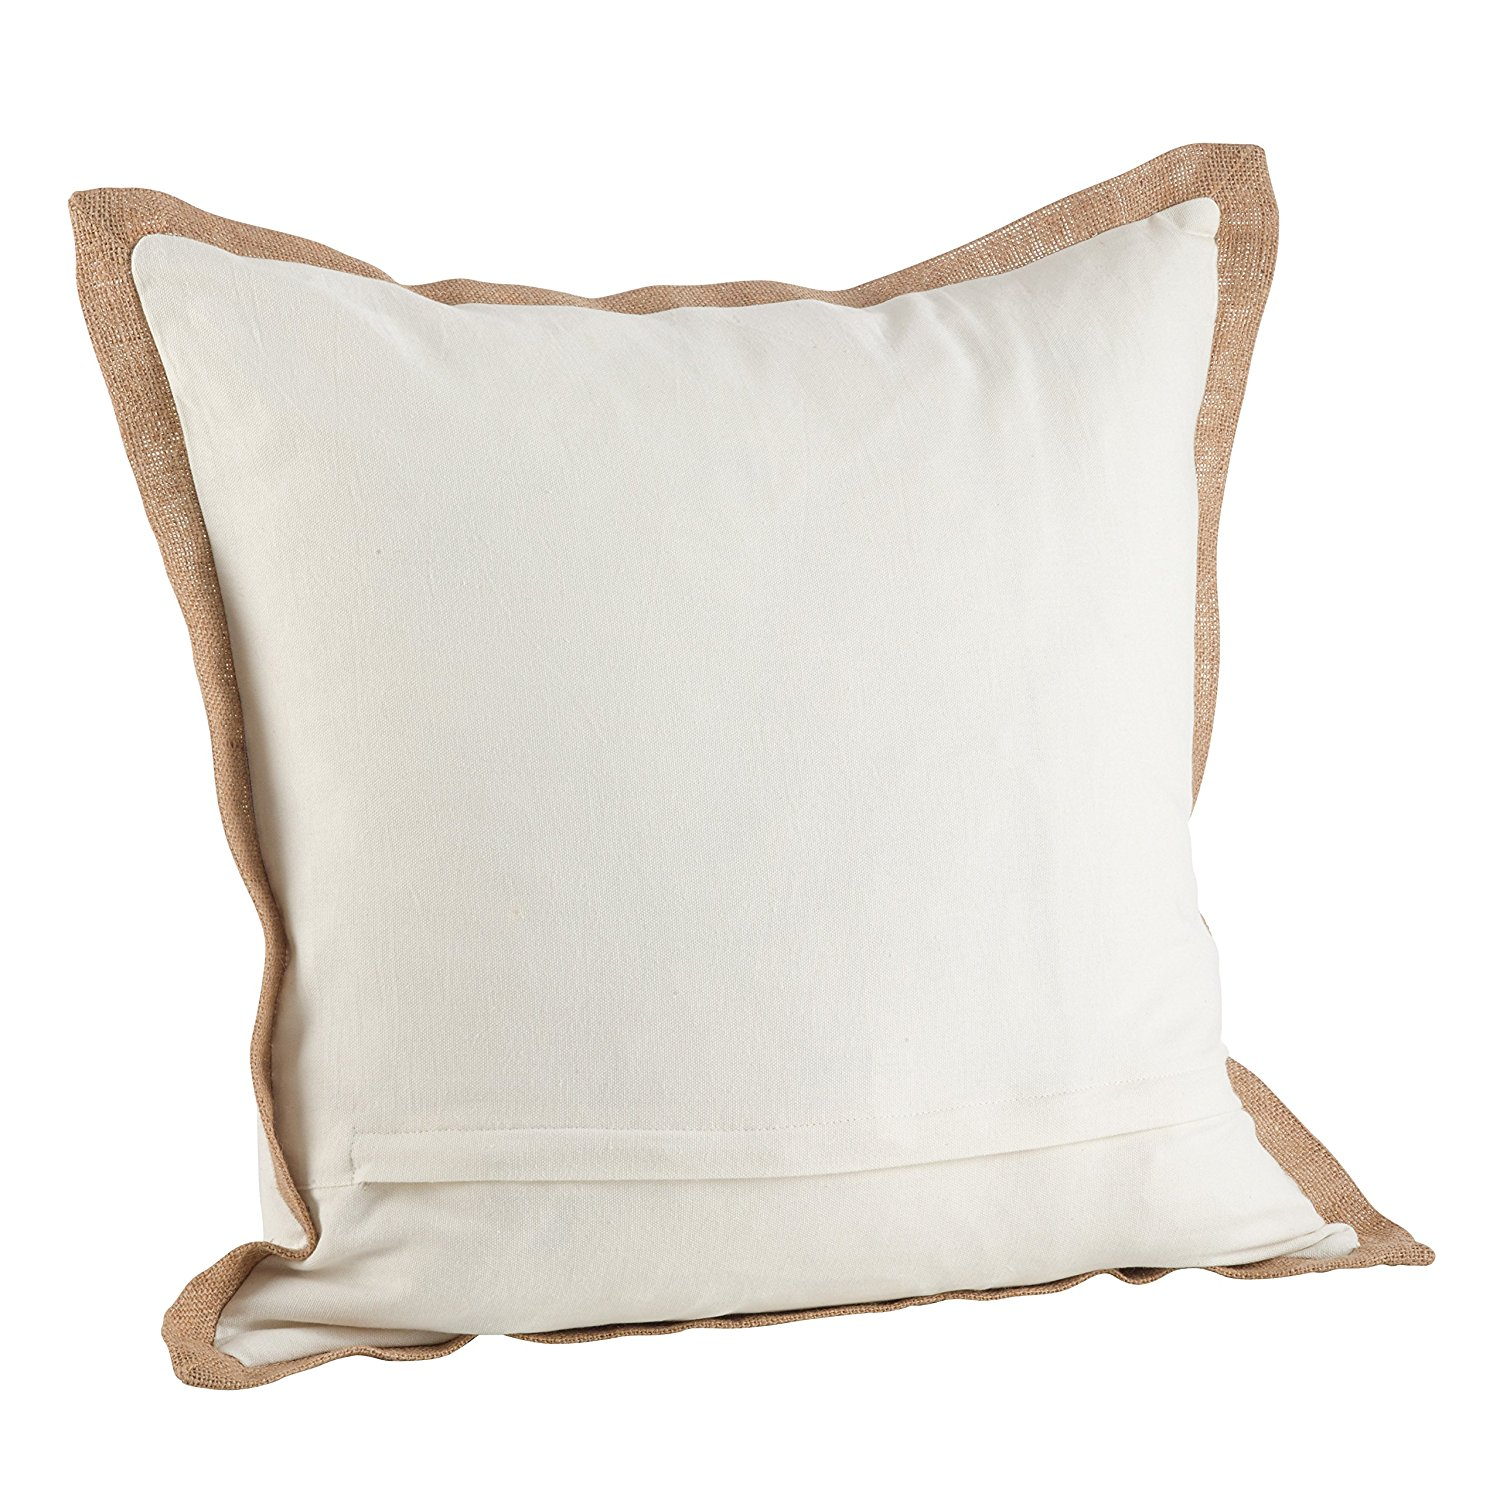 Decorative Pillows Down Filled : Nautical Down Filled Throw Pillow (Octopus) Salty Home